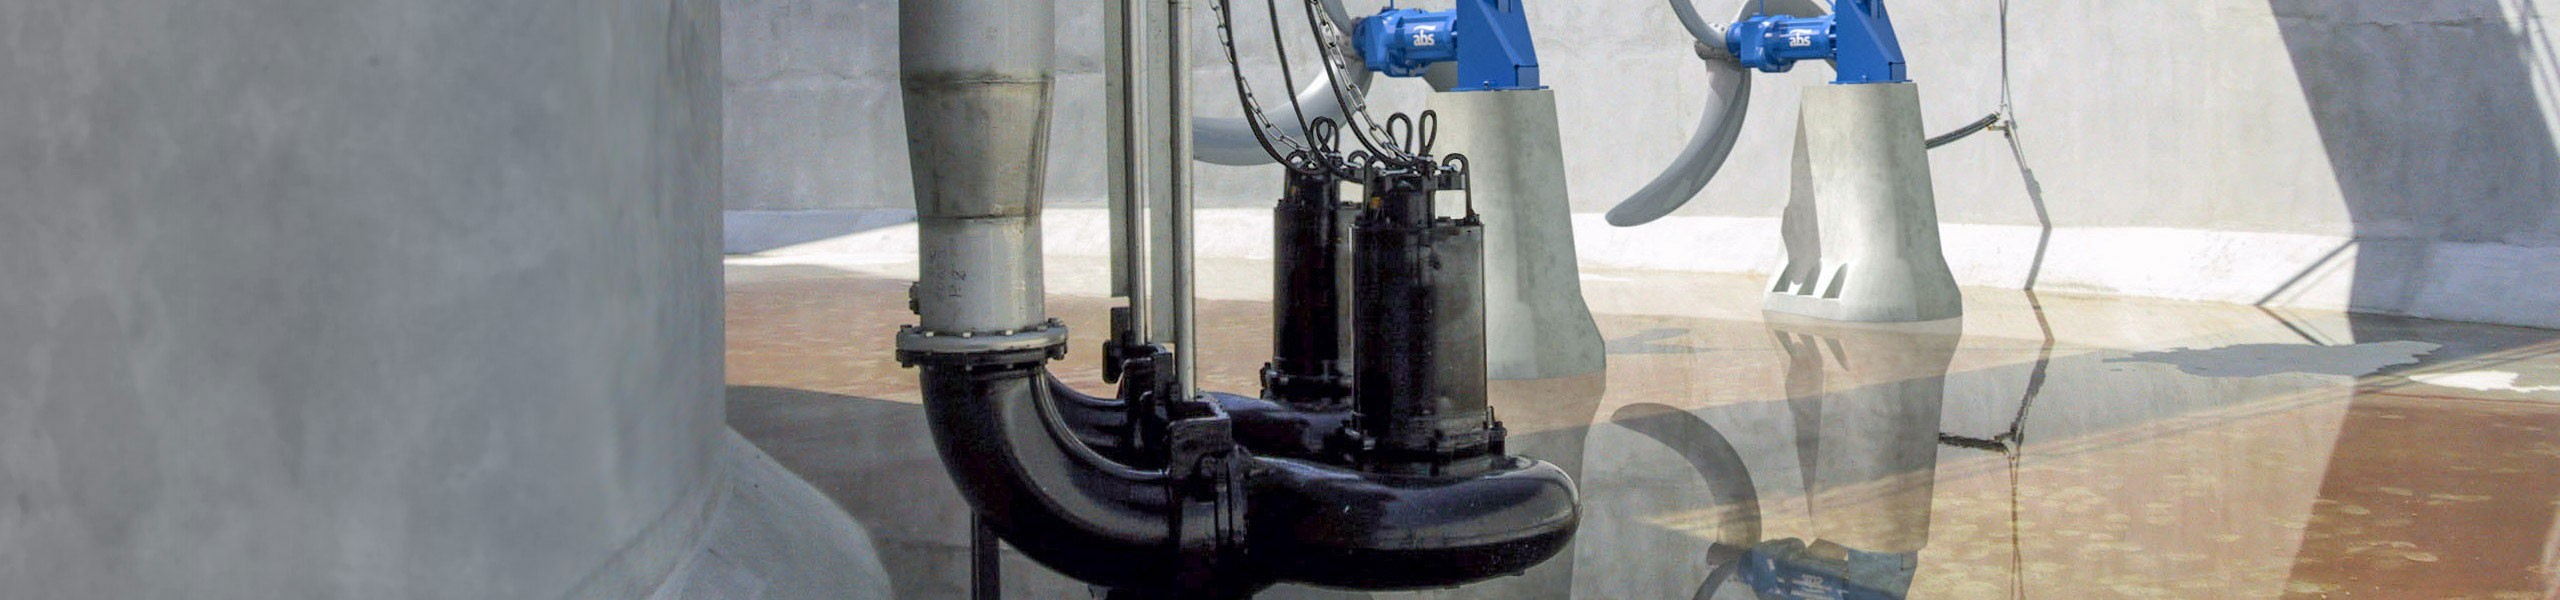 Submersible-pumps-banner--1.jpg